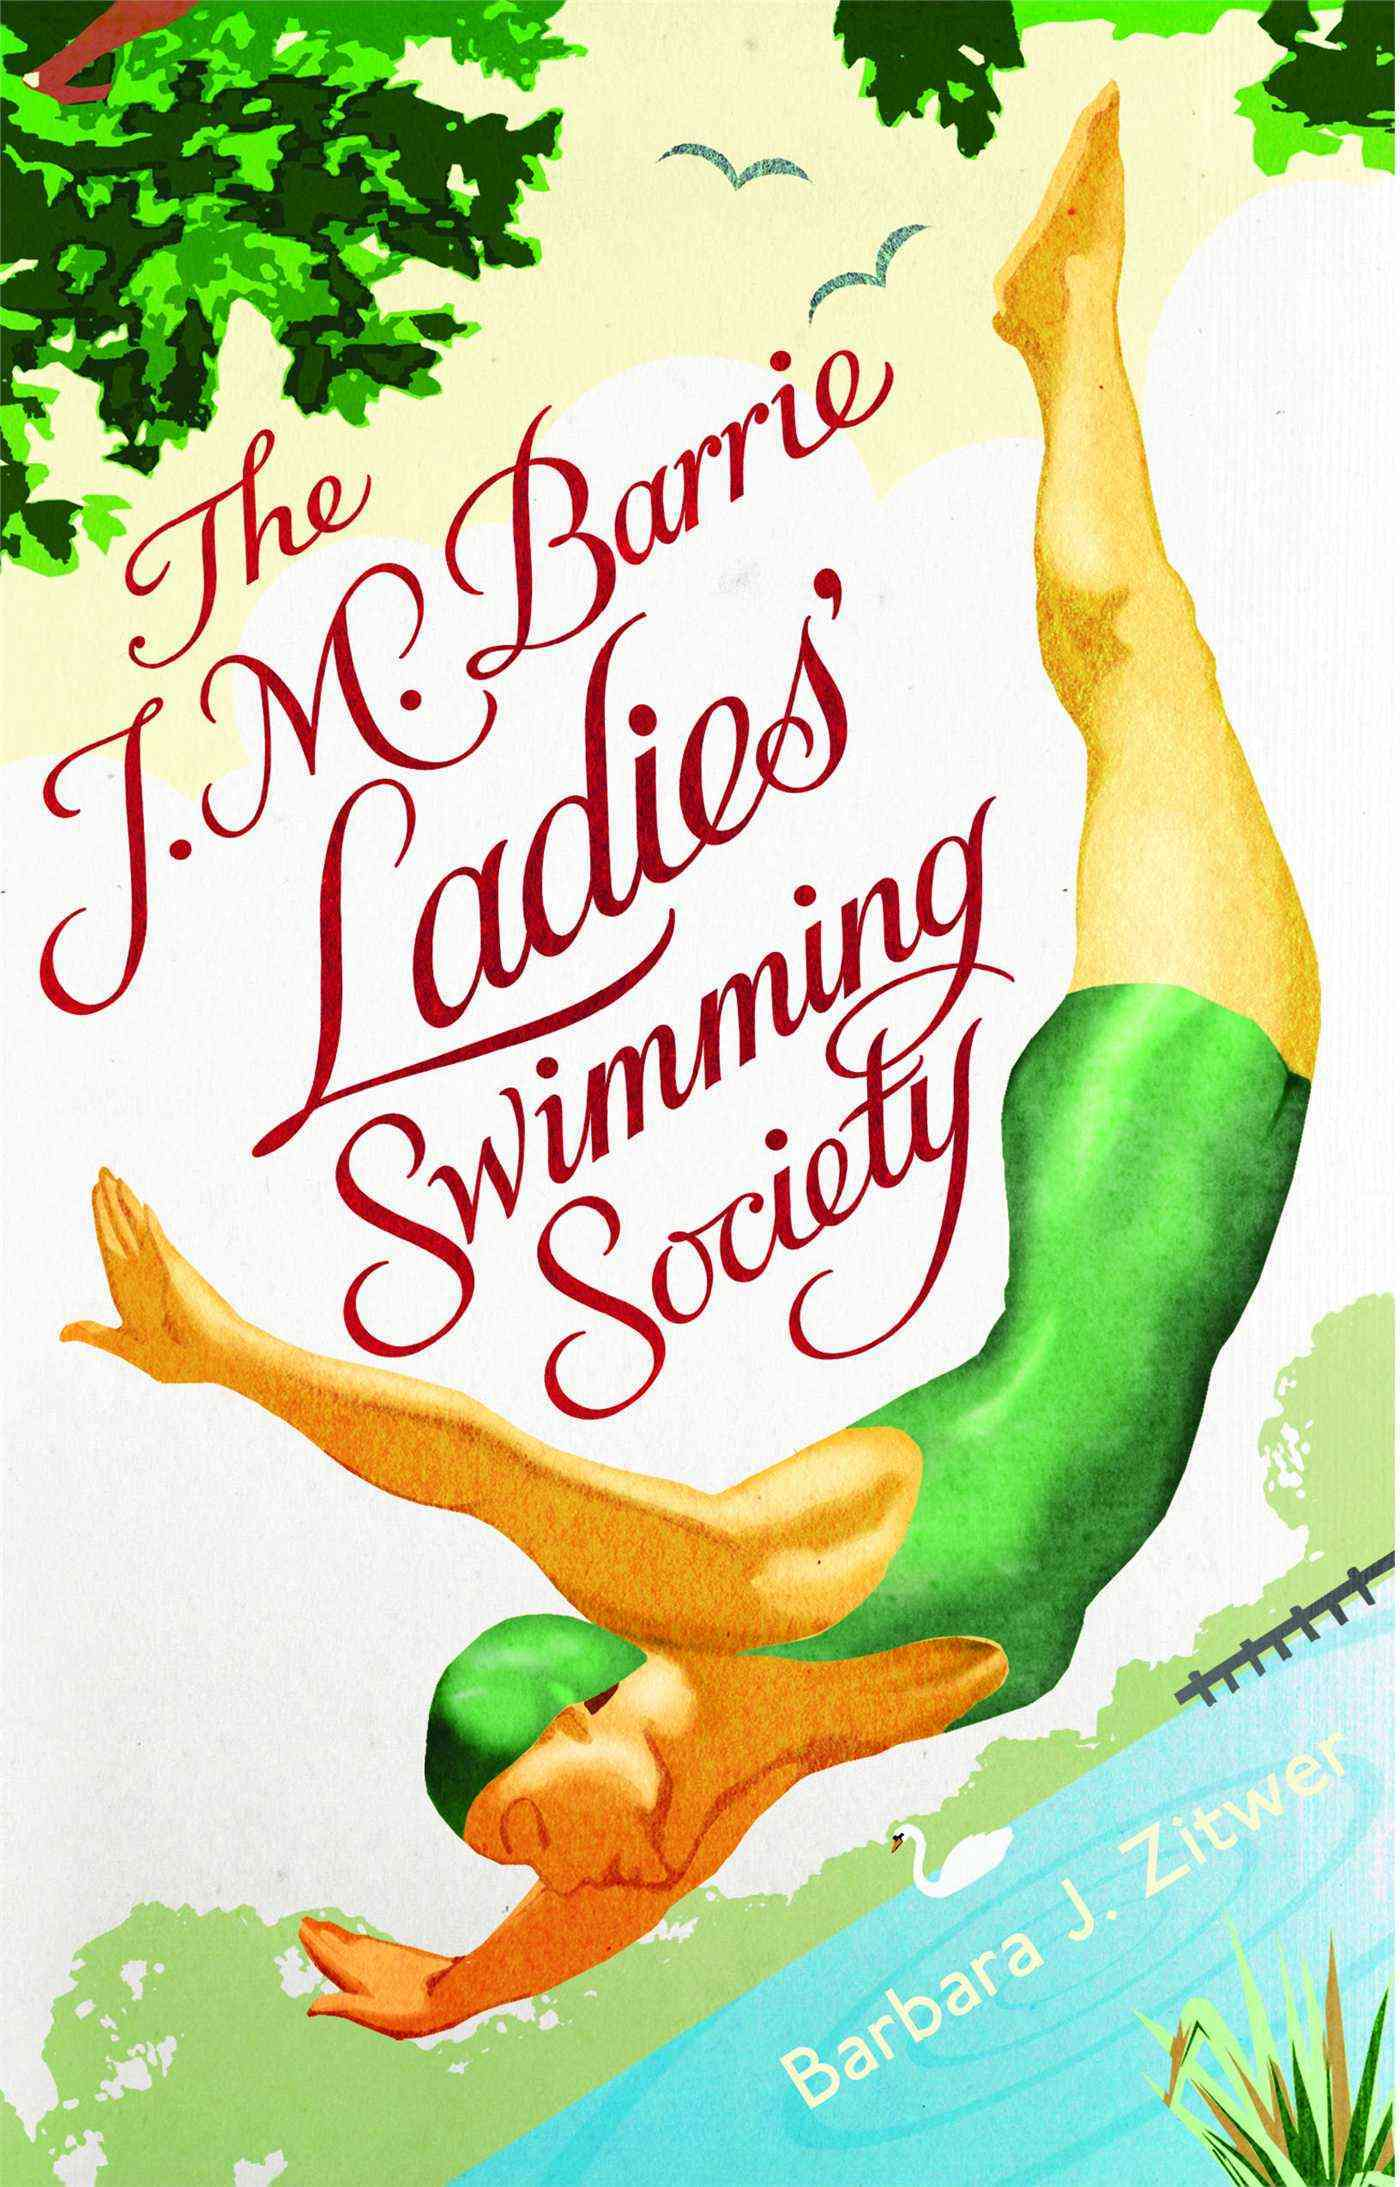 The J. M. Barrie Ladies' Swimming Society (Paperback)